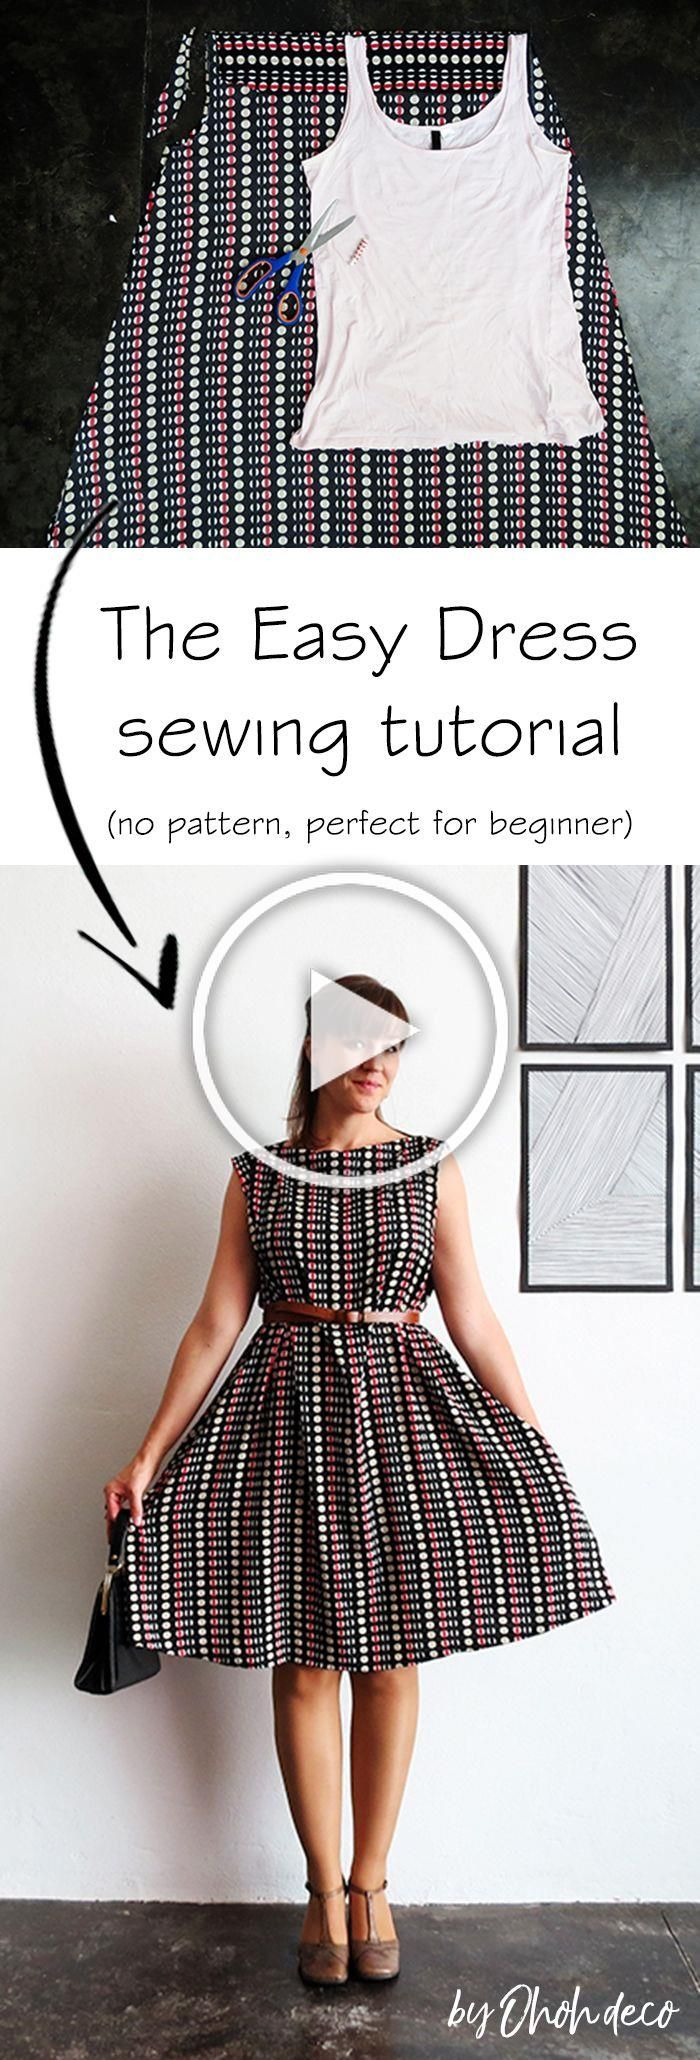 The easy dress sewing tutorial no pattern perfect for beginner who want to make a simple garment piece